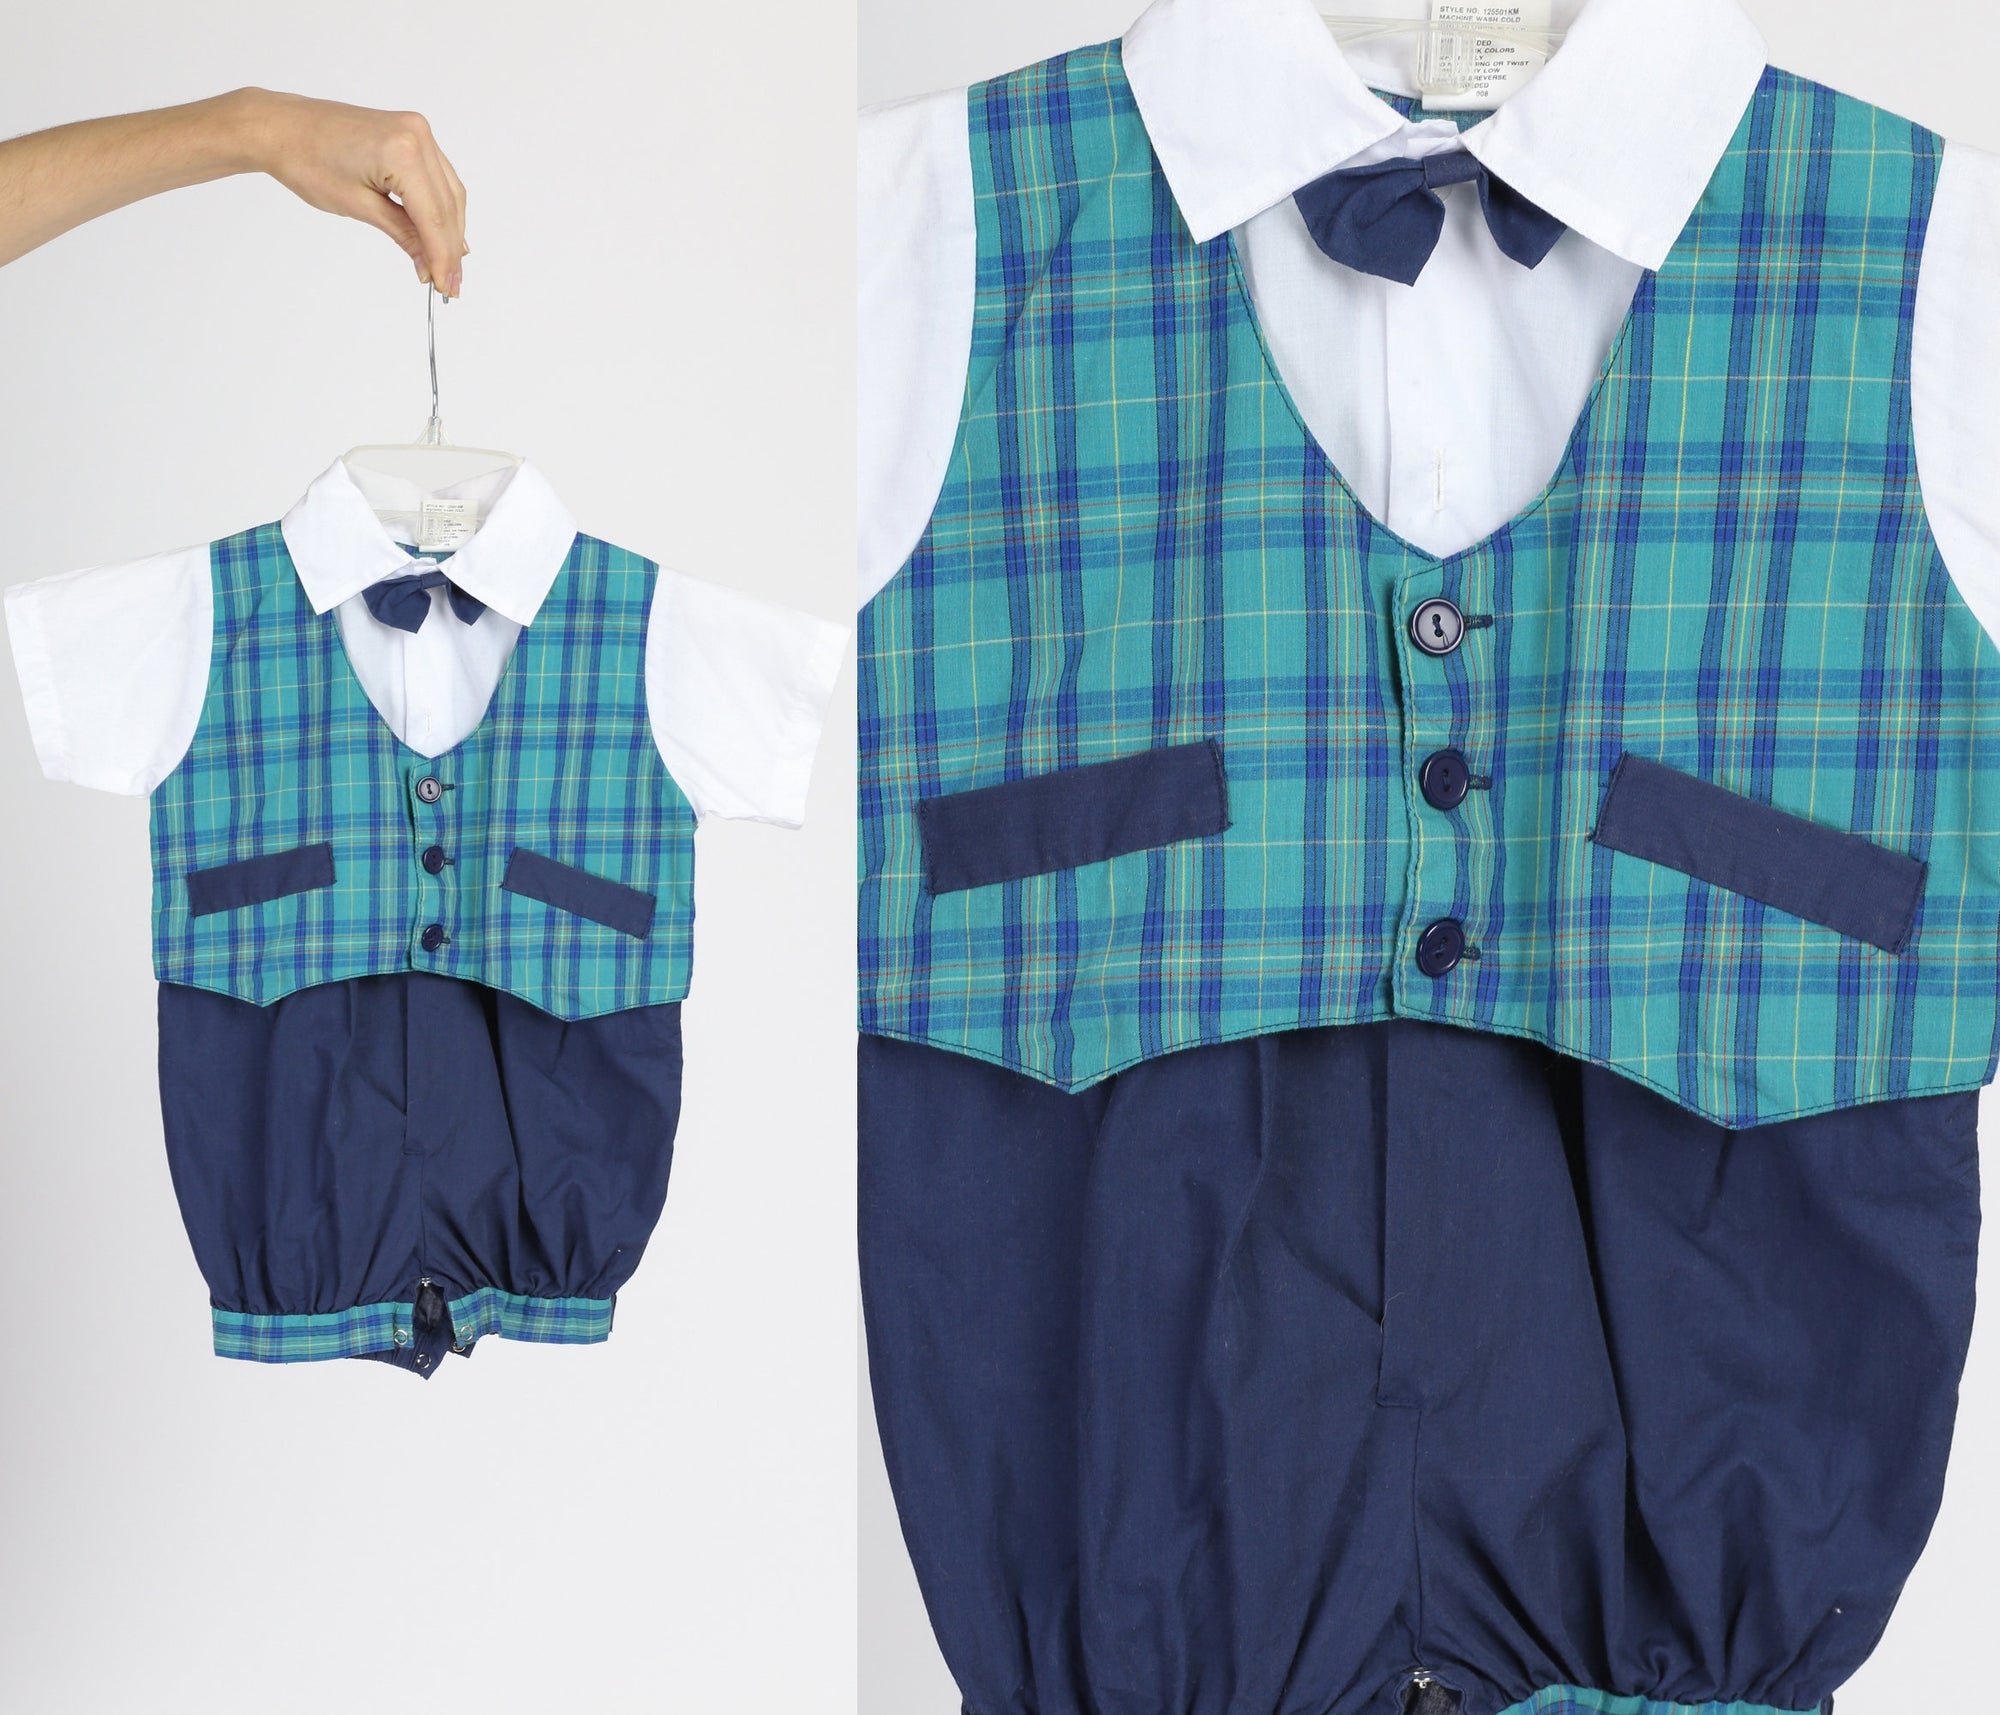 80s Plaid Suit Baby Onesie - 24 Months